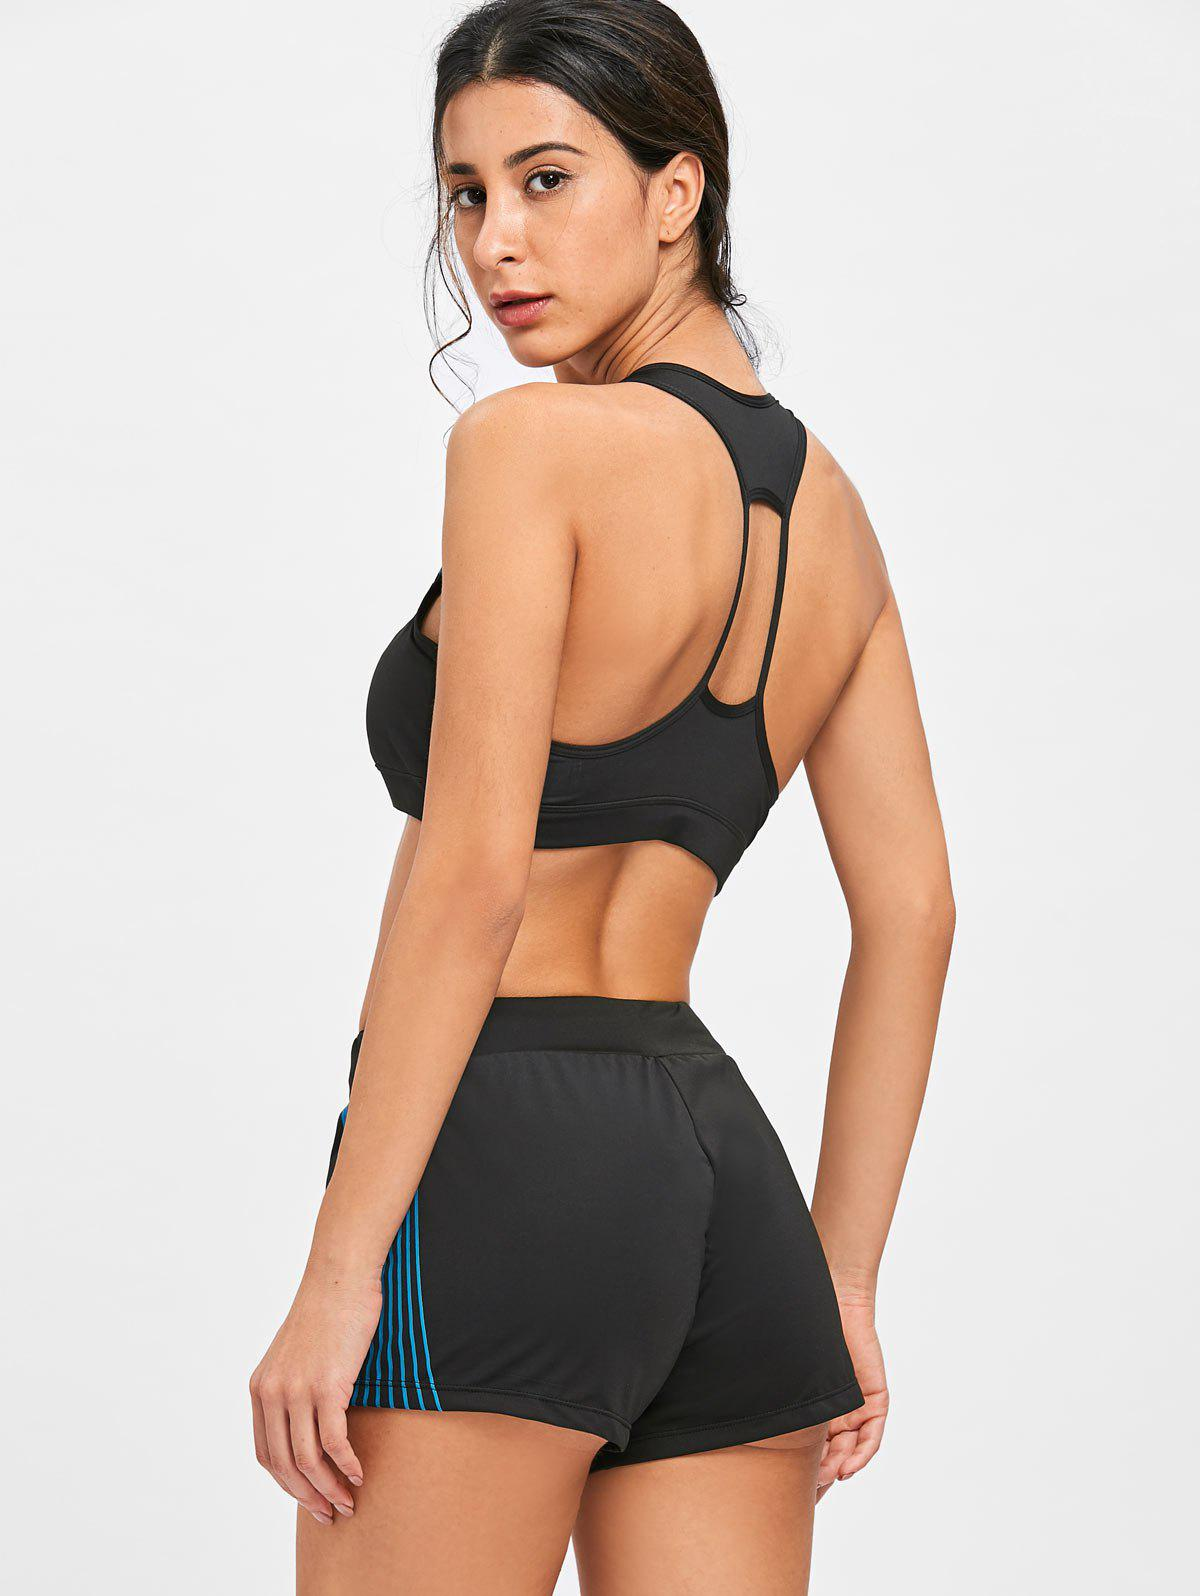 Striped Bra and Shorts Sports Suit - BLUE/BLACK M